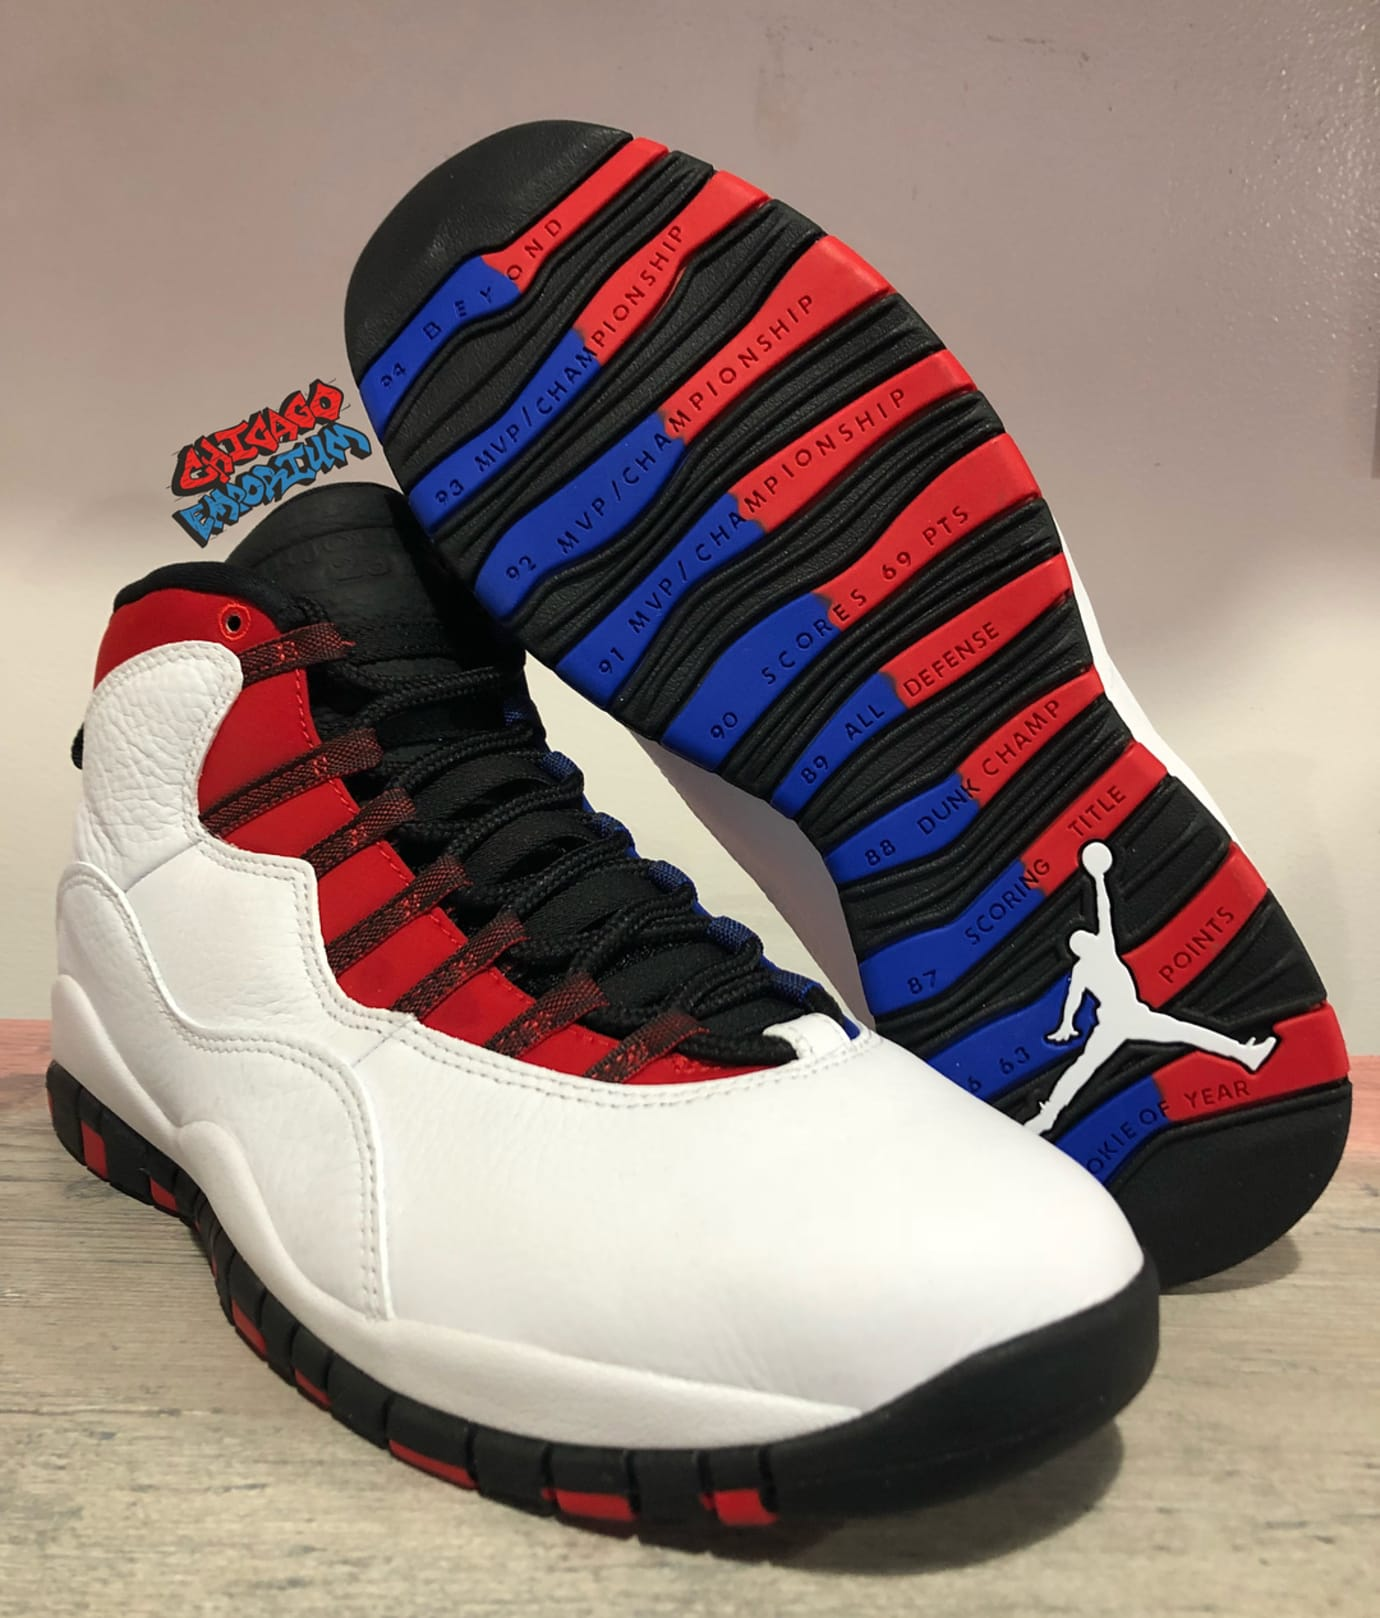 quality design faebd 50b47 Air Jordan 10 X Westbrook Olympians High School Release Date ...